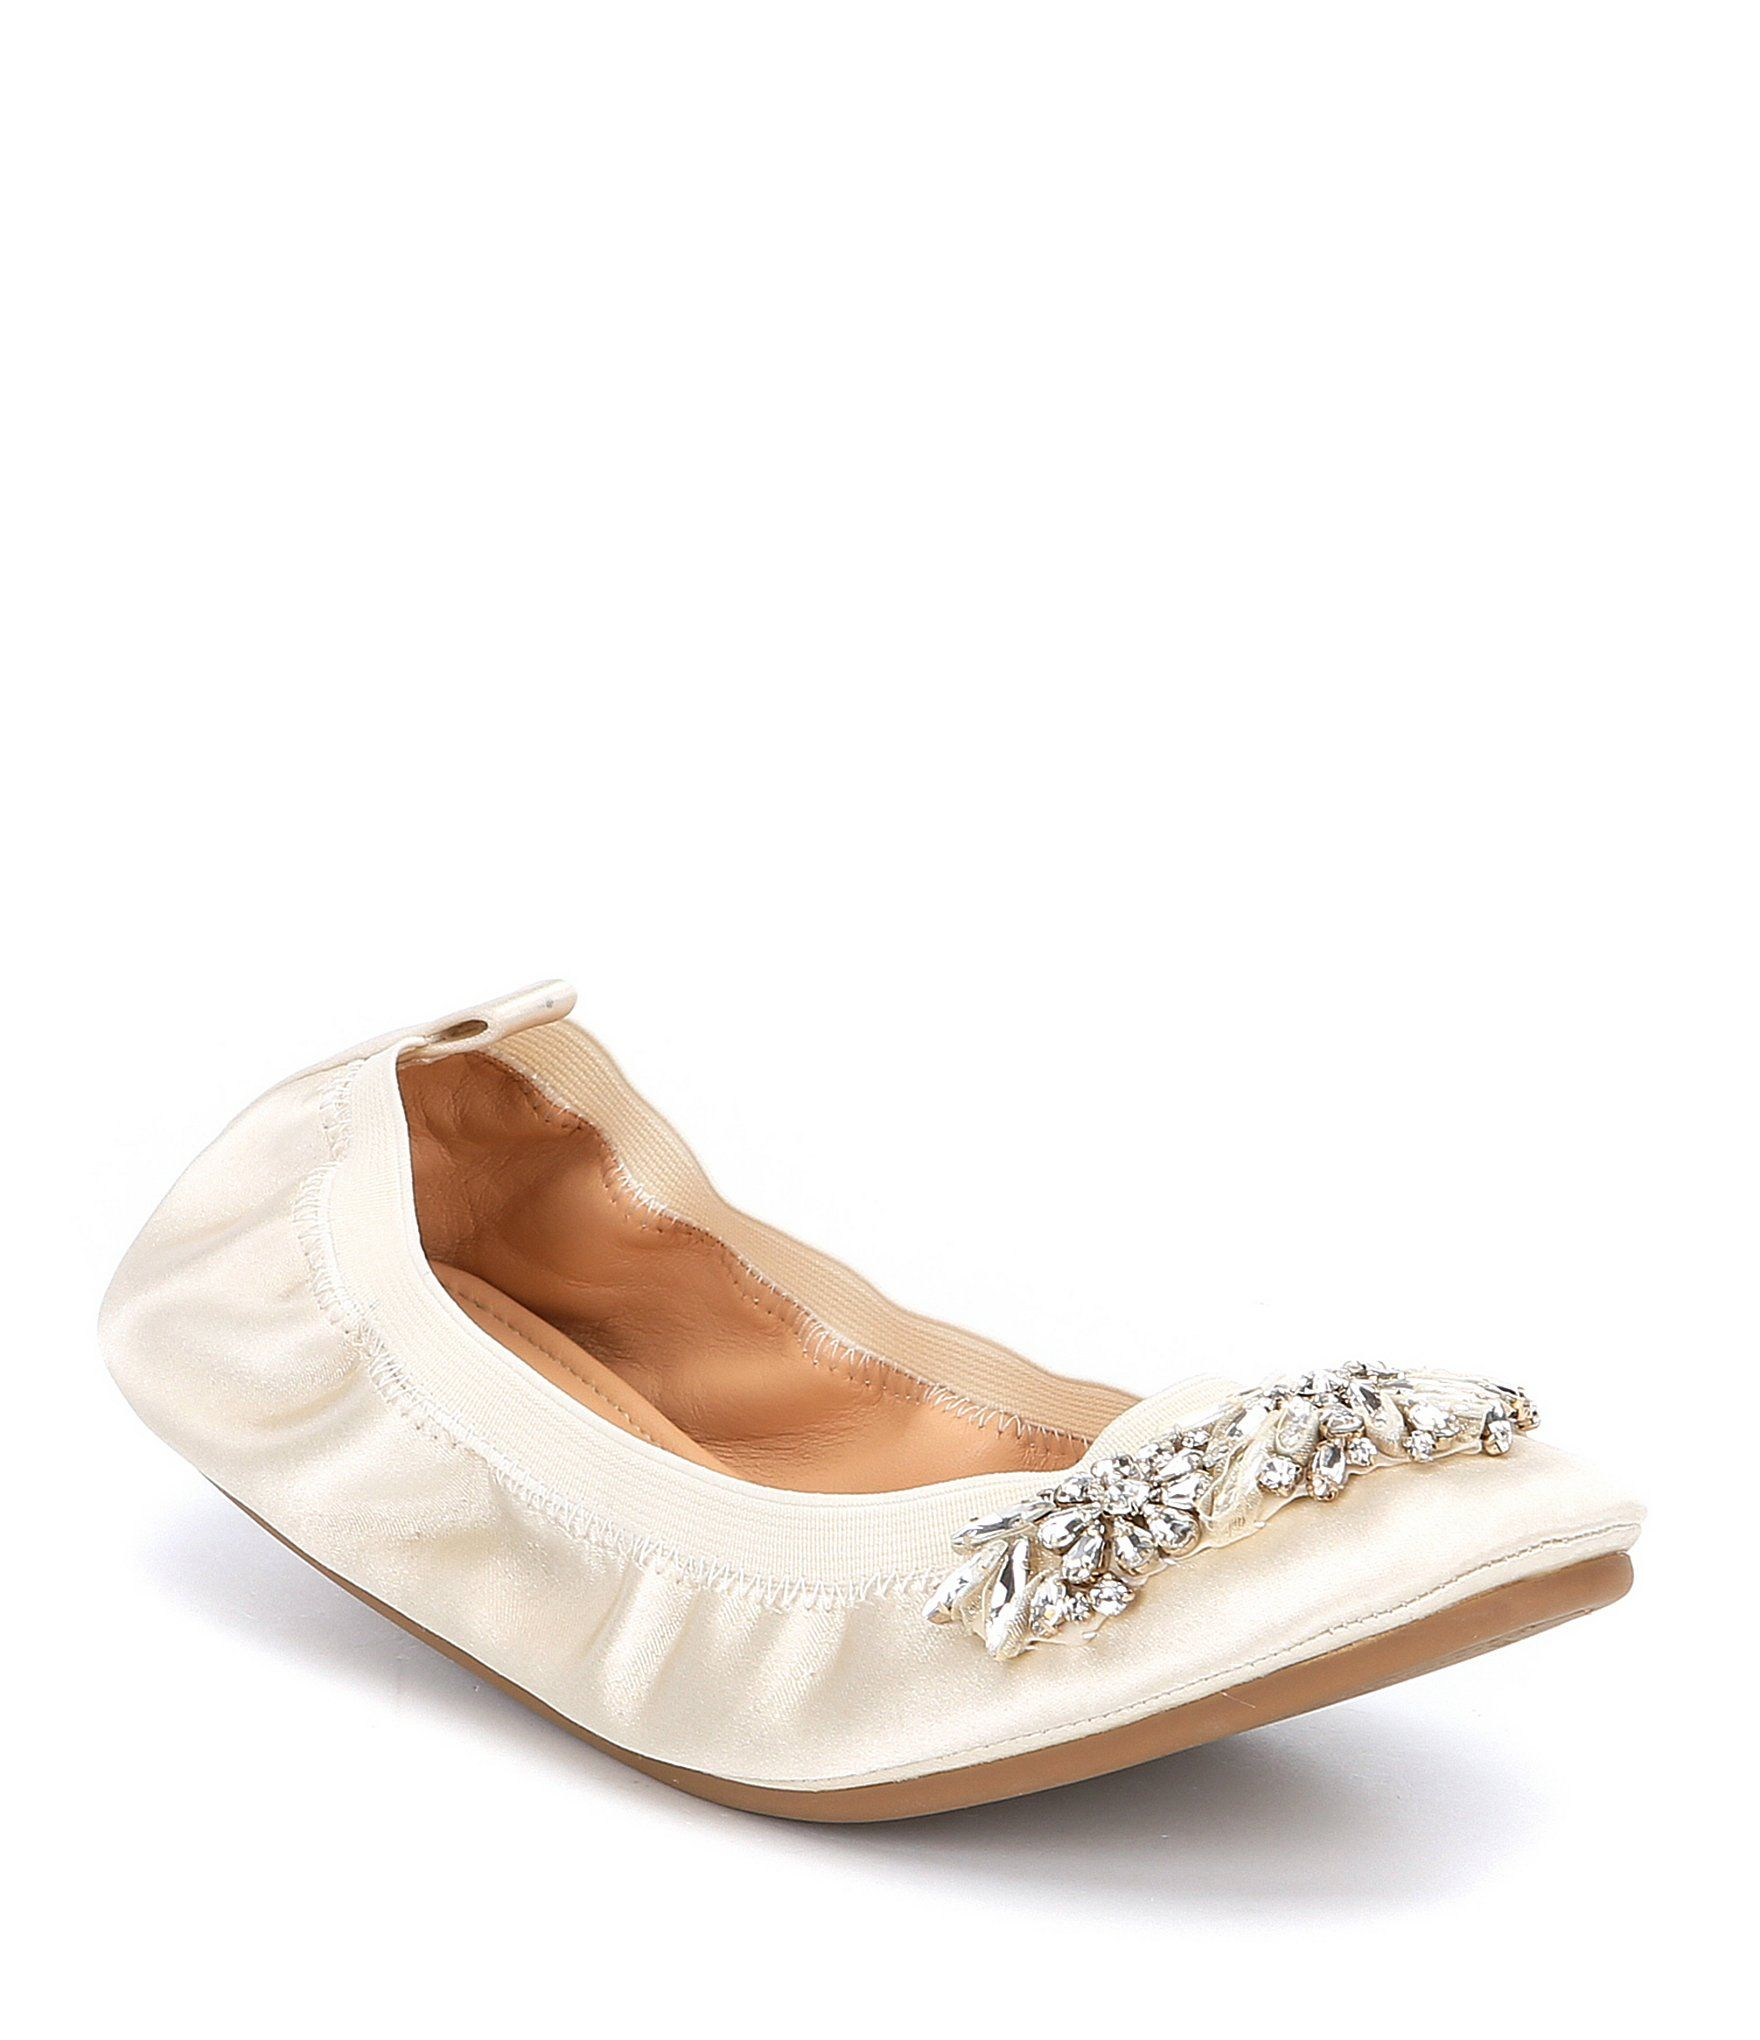 Badgley Mischka Sasha Satin Jeweled Ballet Flats 6oEfFM3